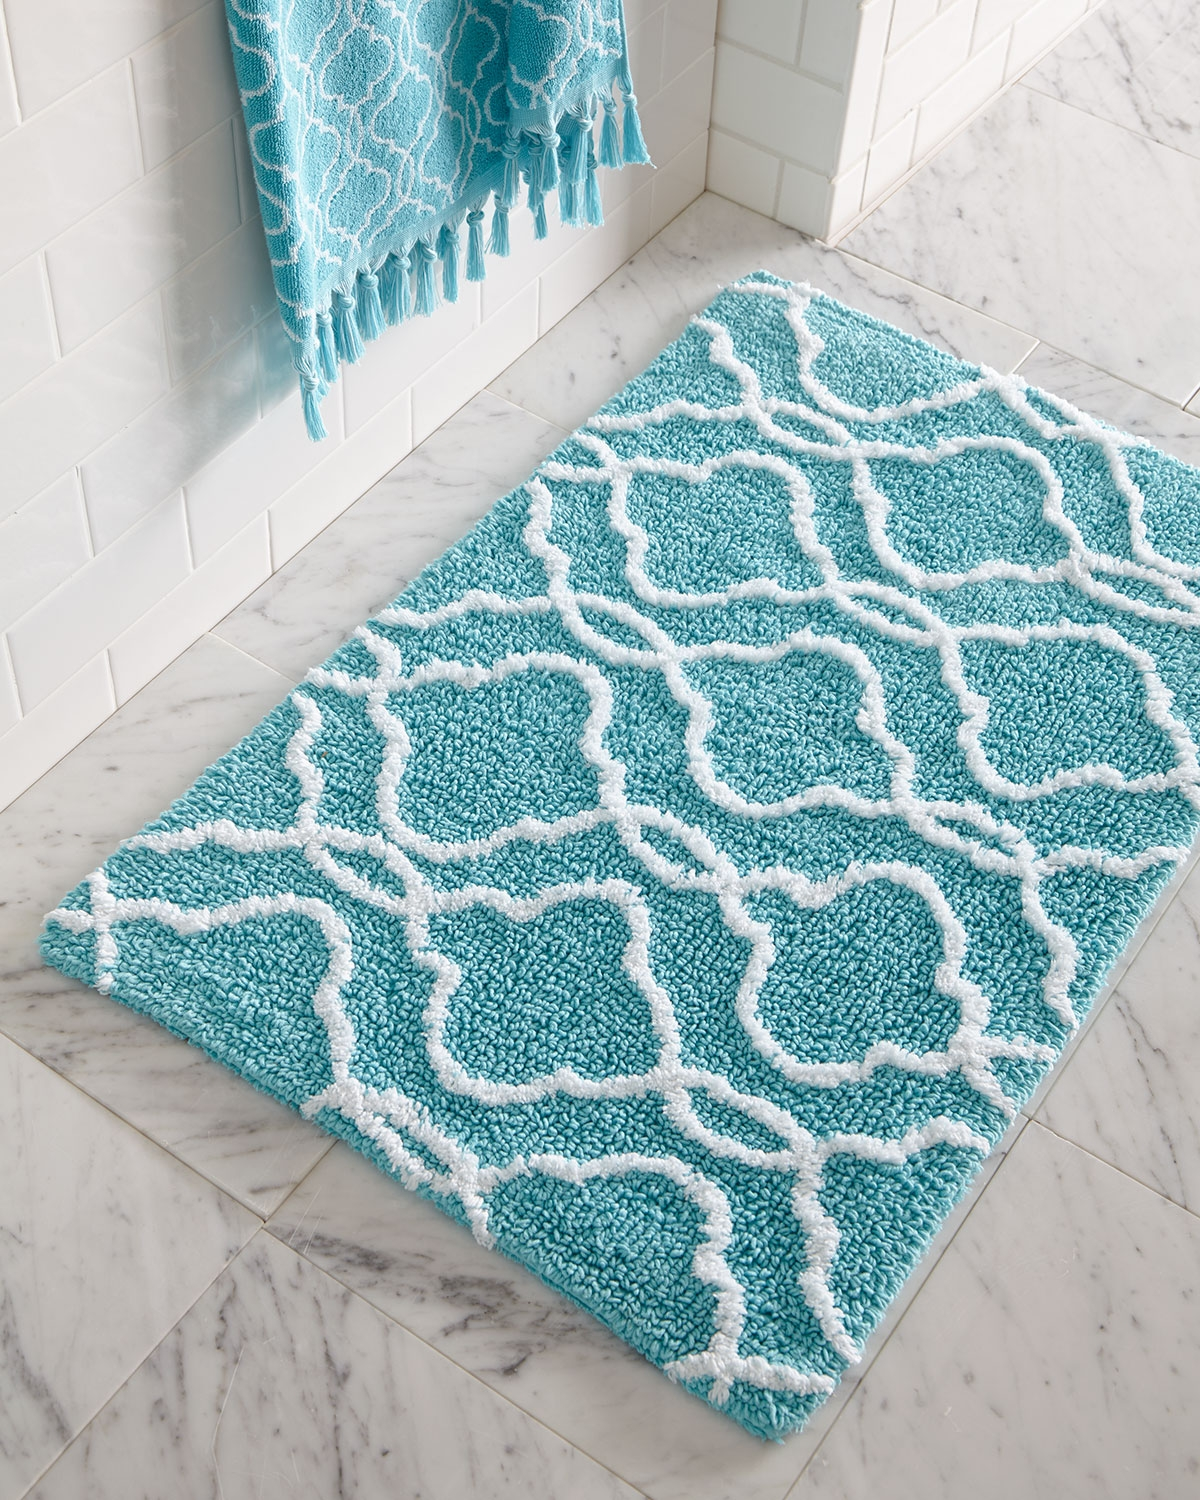 Permalink to Teal Bath Rugs And Towels